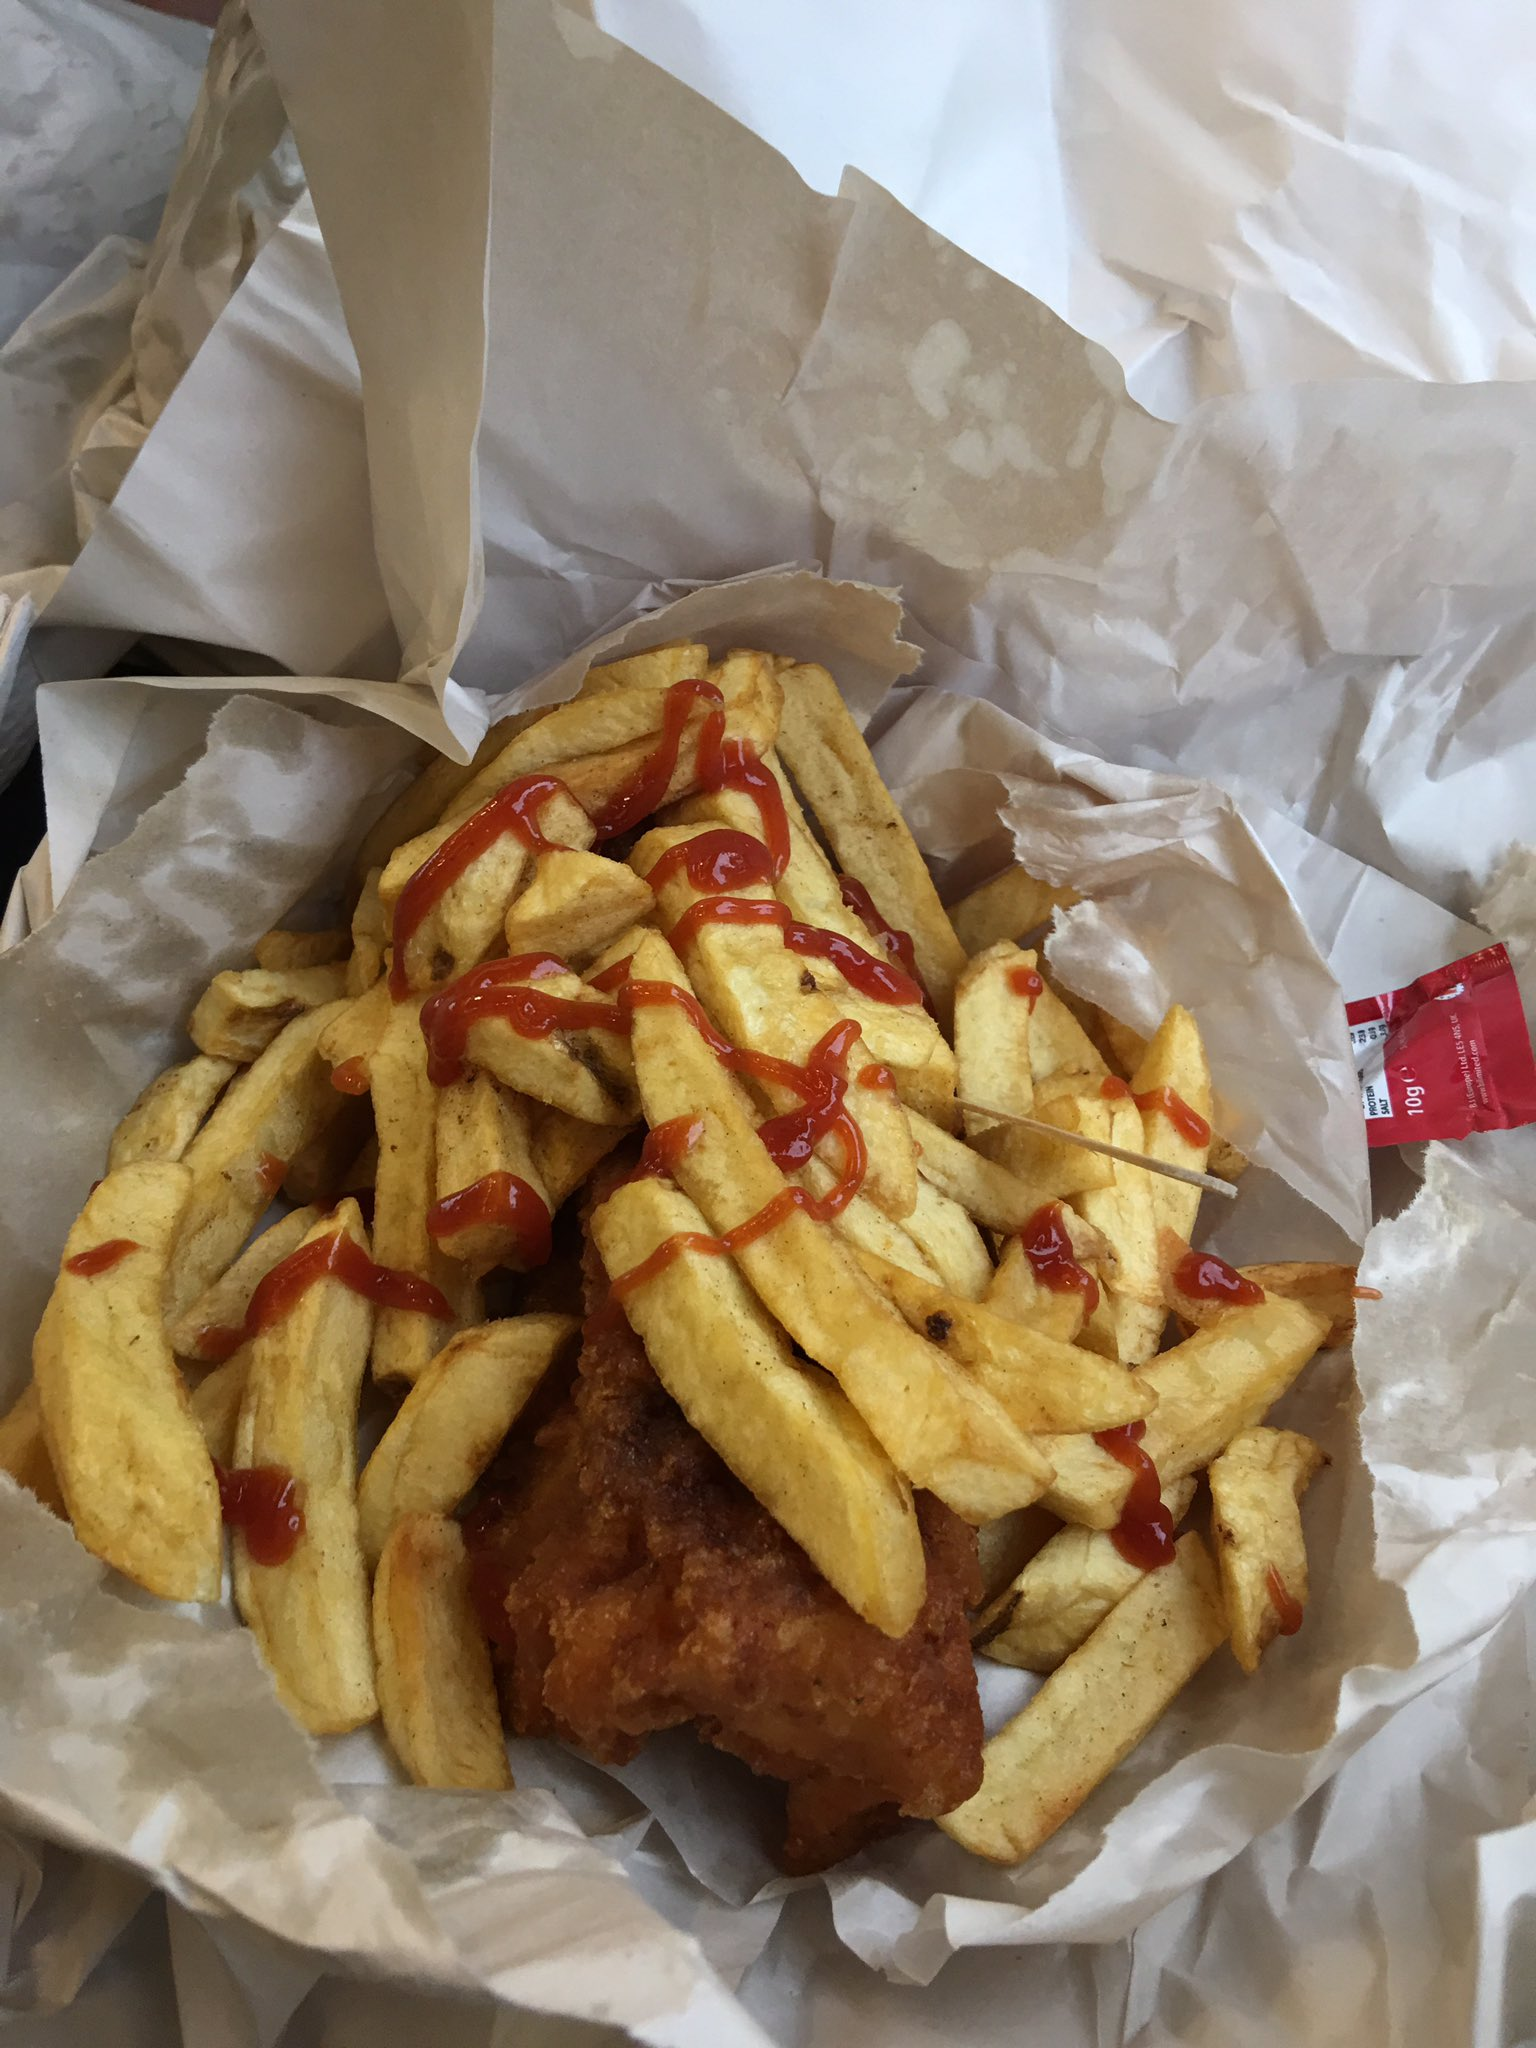 Appy belated fish n chip Friday https://t.co/q6k04Ulbqf